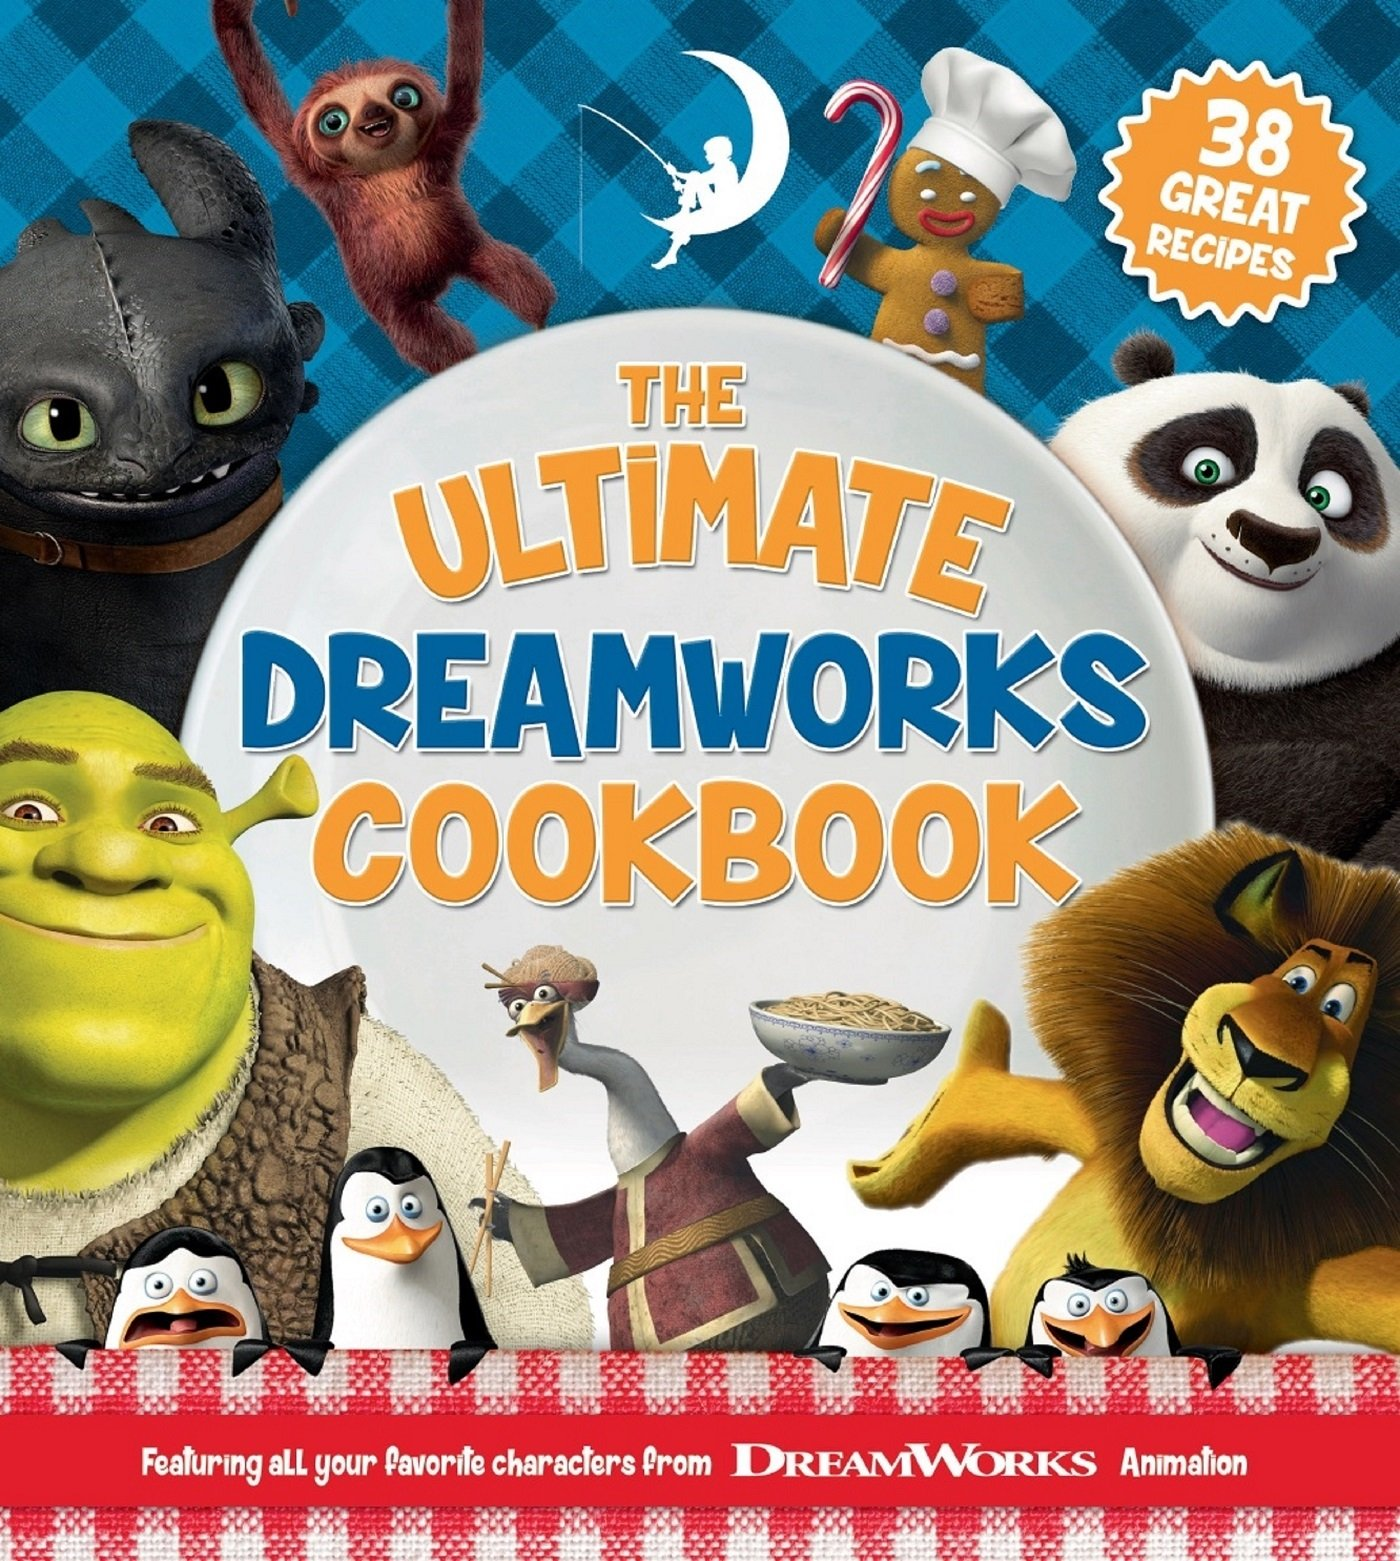 Download The Ultimate DreamWorks Cookbook: 38 Great Recipes pdf